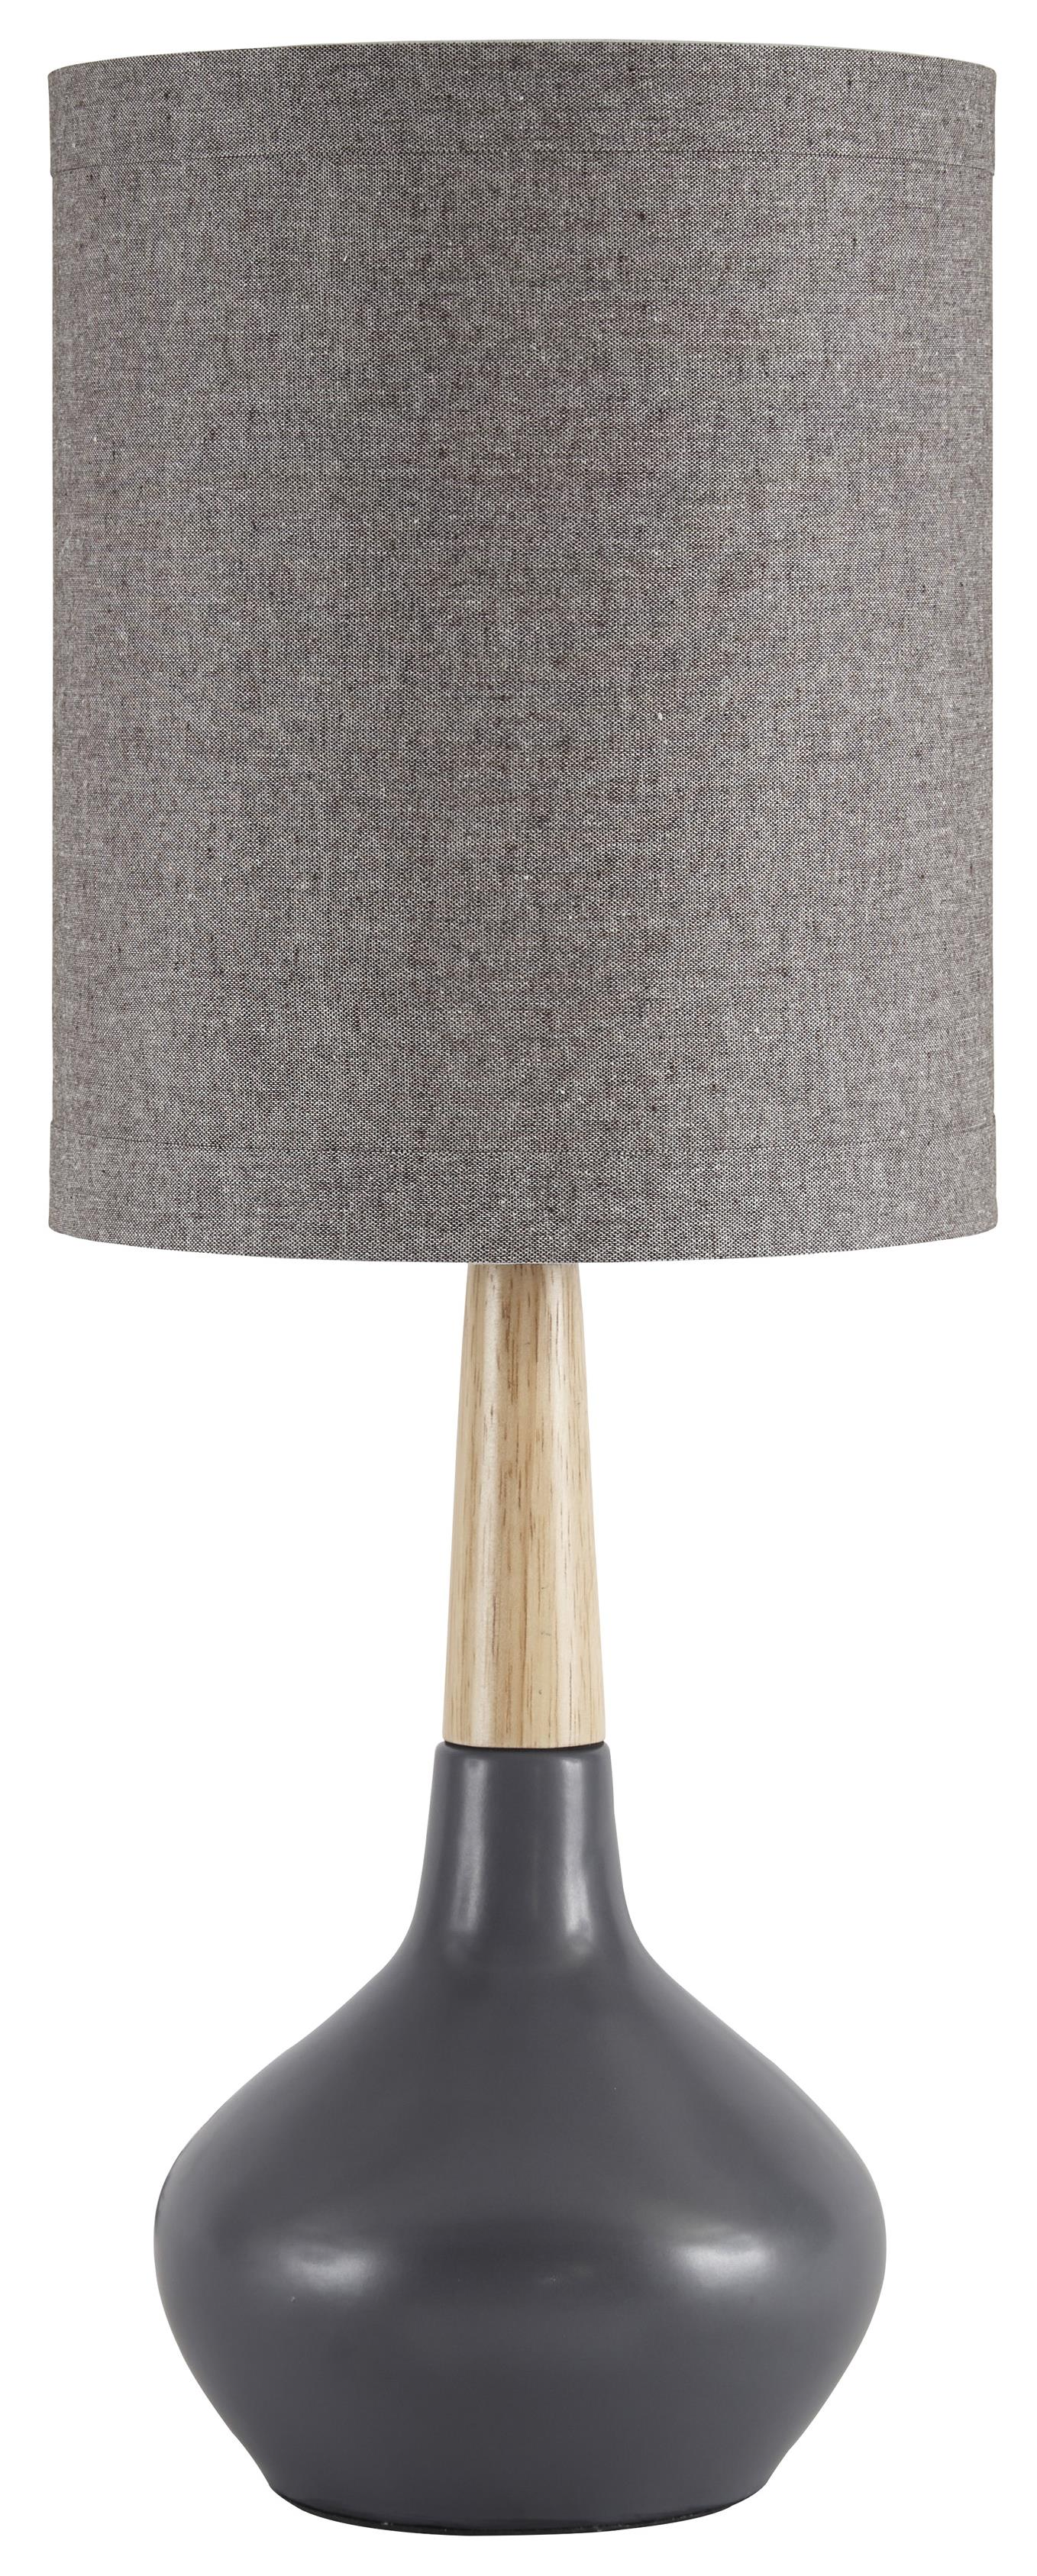 Signature Design by Ashley Lamps - Contemporary Set of 2 Stacia Ceramic Table Lamps - Item Number: L117934